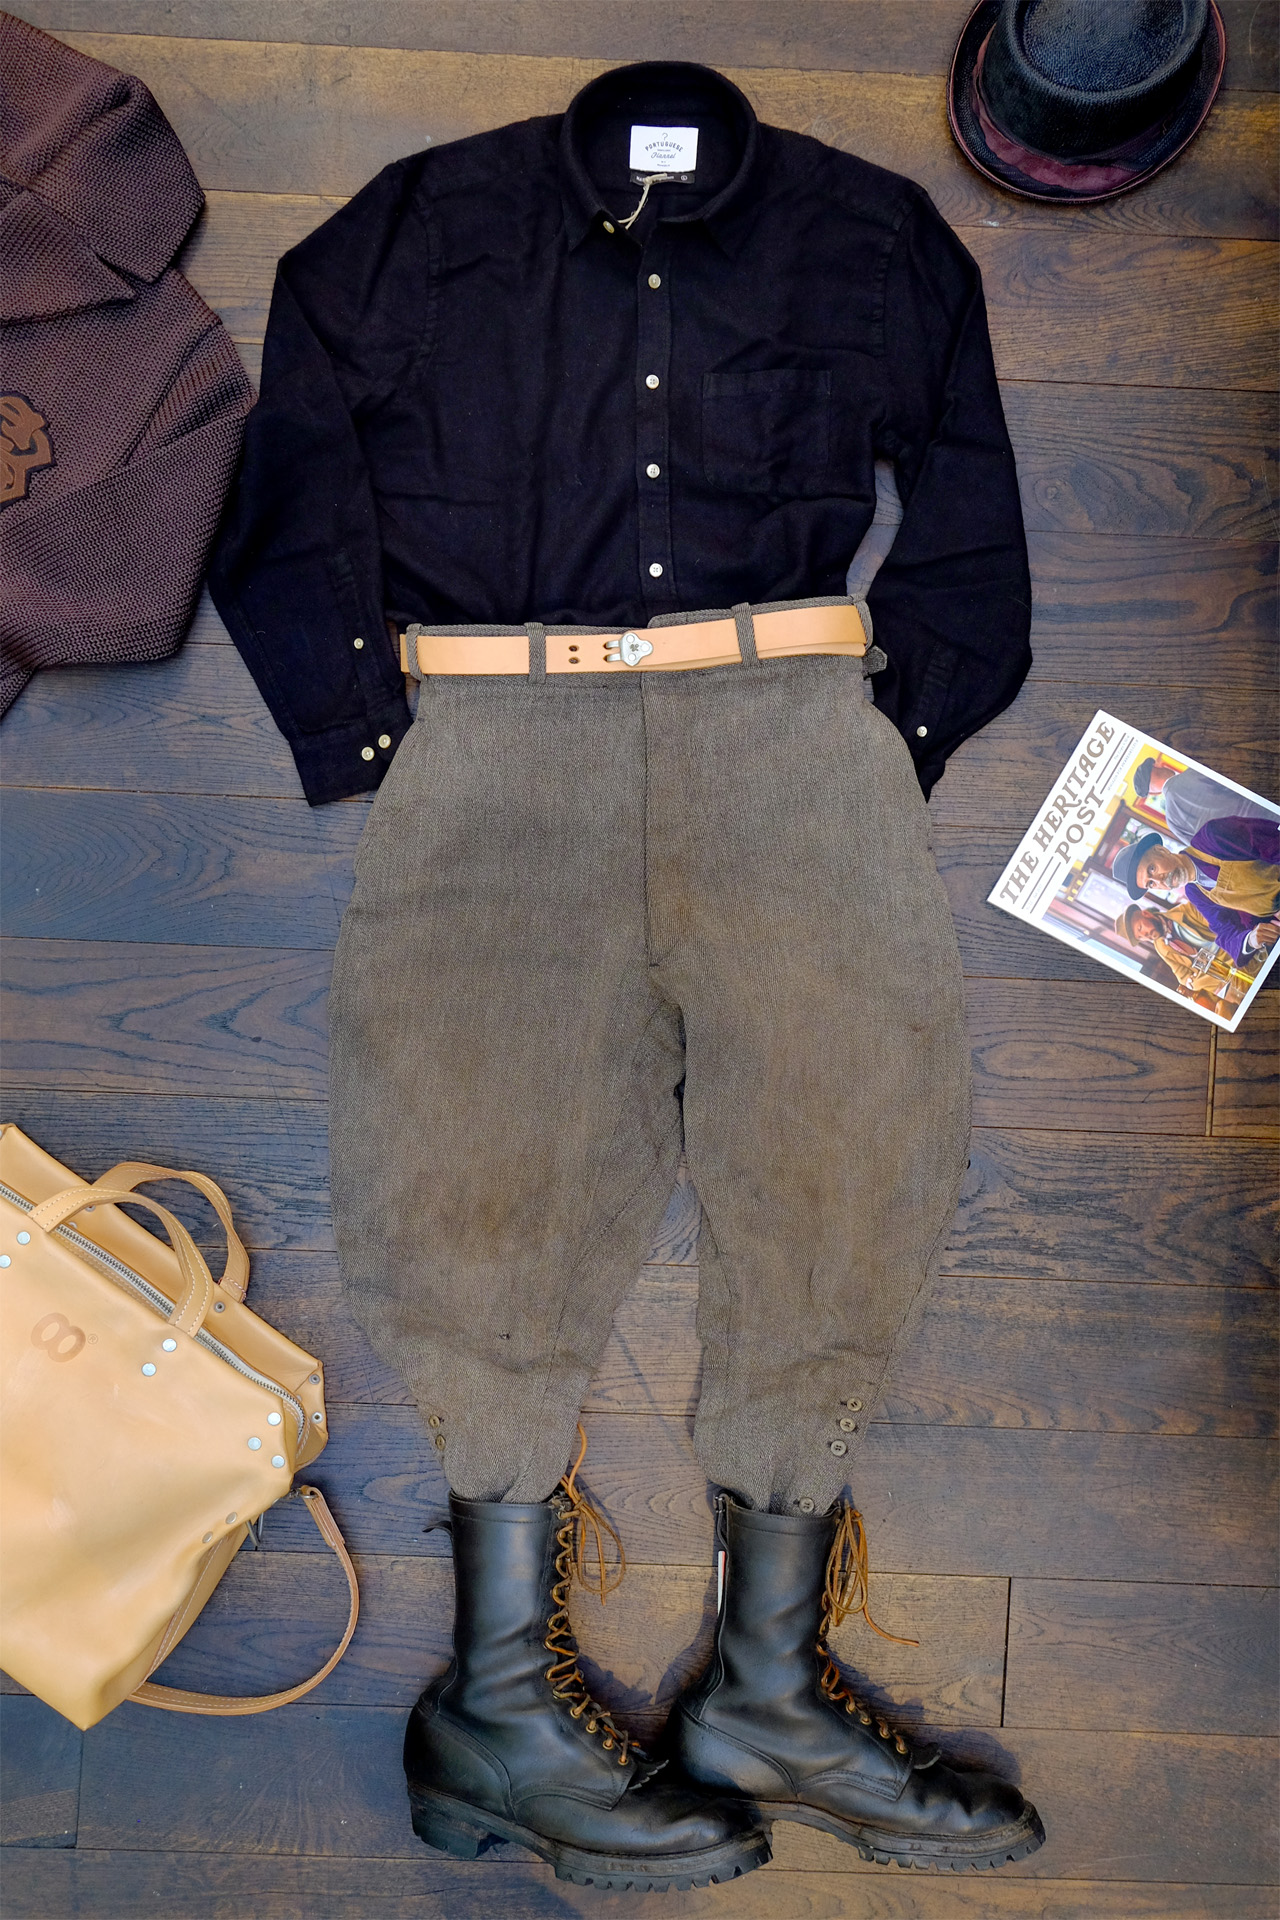 outfit-vintage-breeches-wesco-stiefel-portugueseflannel-hemd-schwarz-theheritagepost-moveroma-buttsandshoulders-blacksign